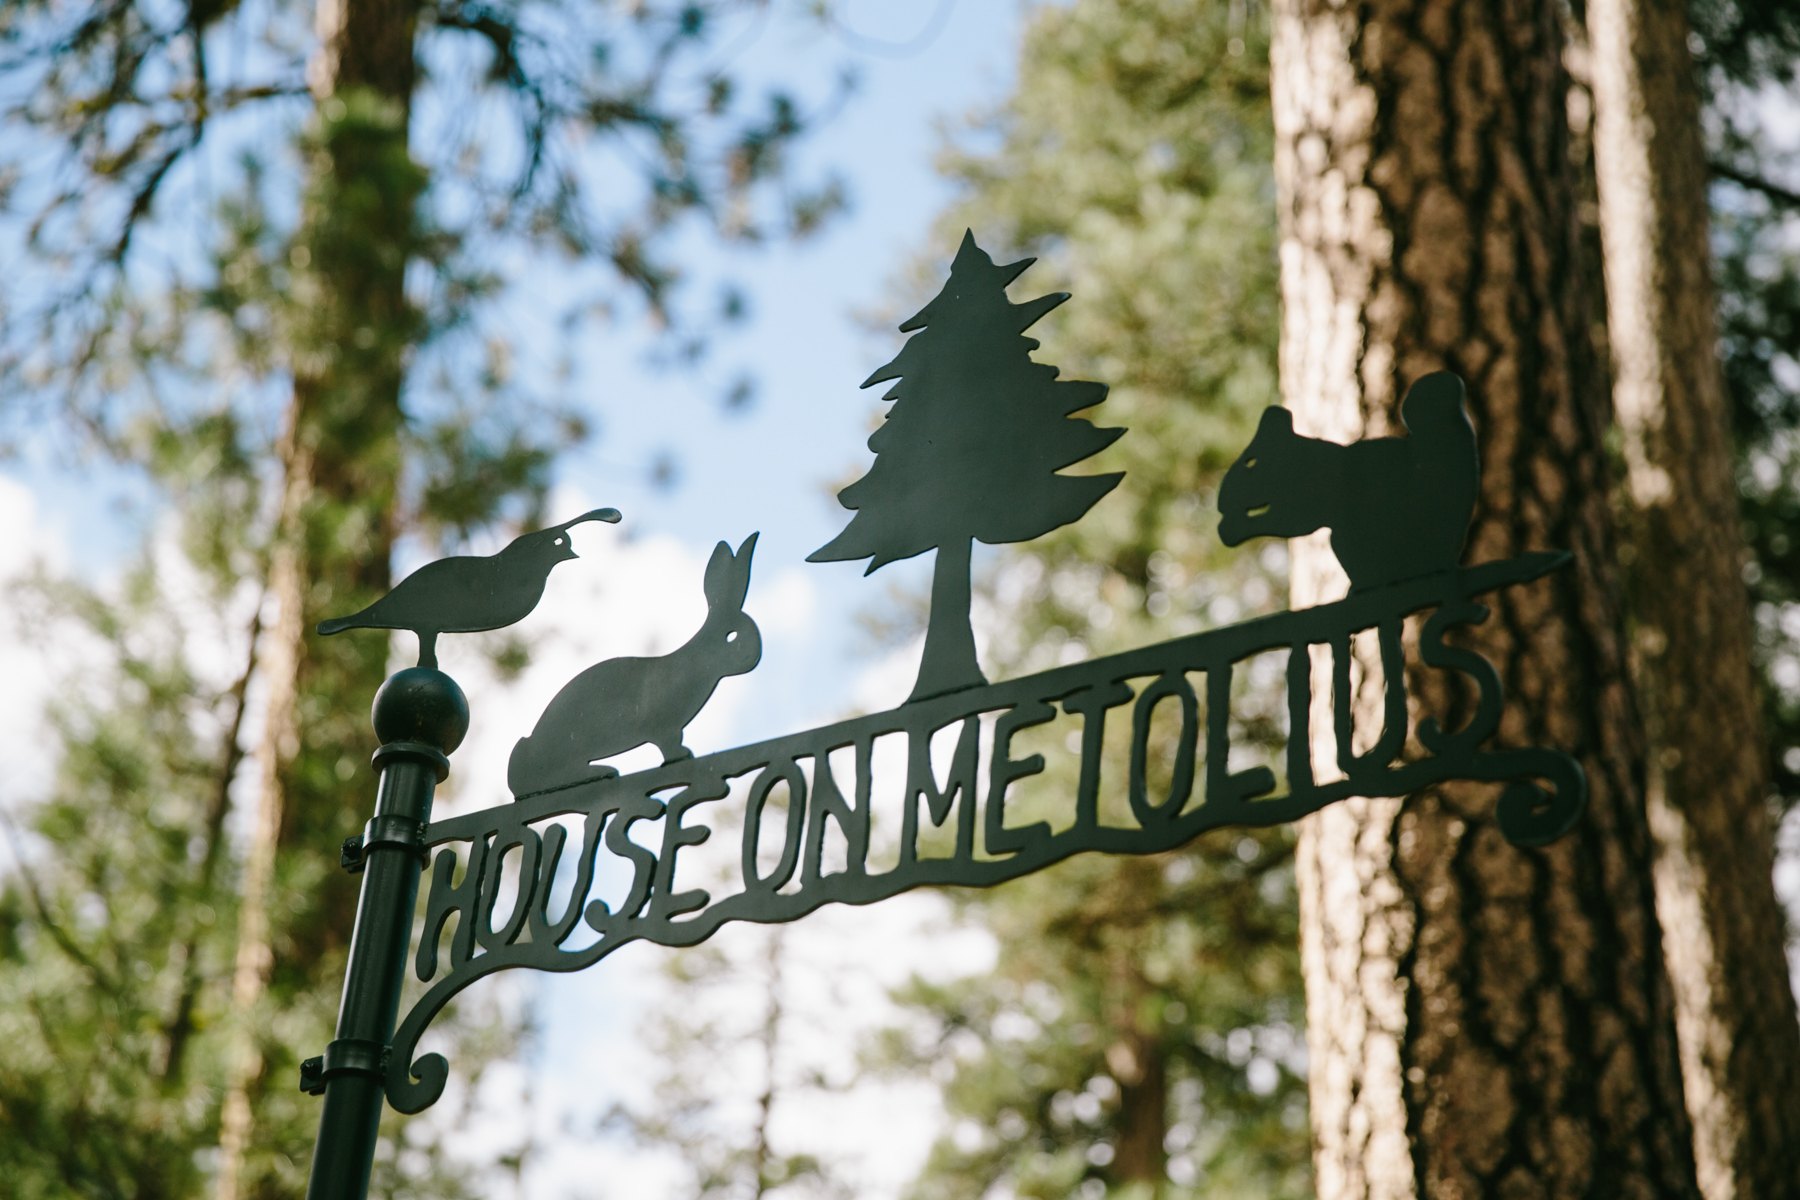 houseonmetoliuswedding-3.jpg